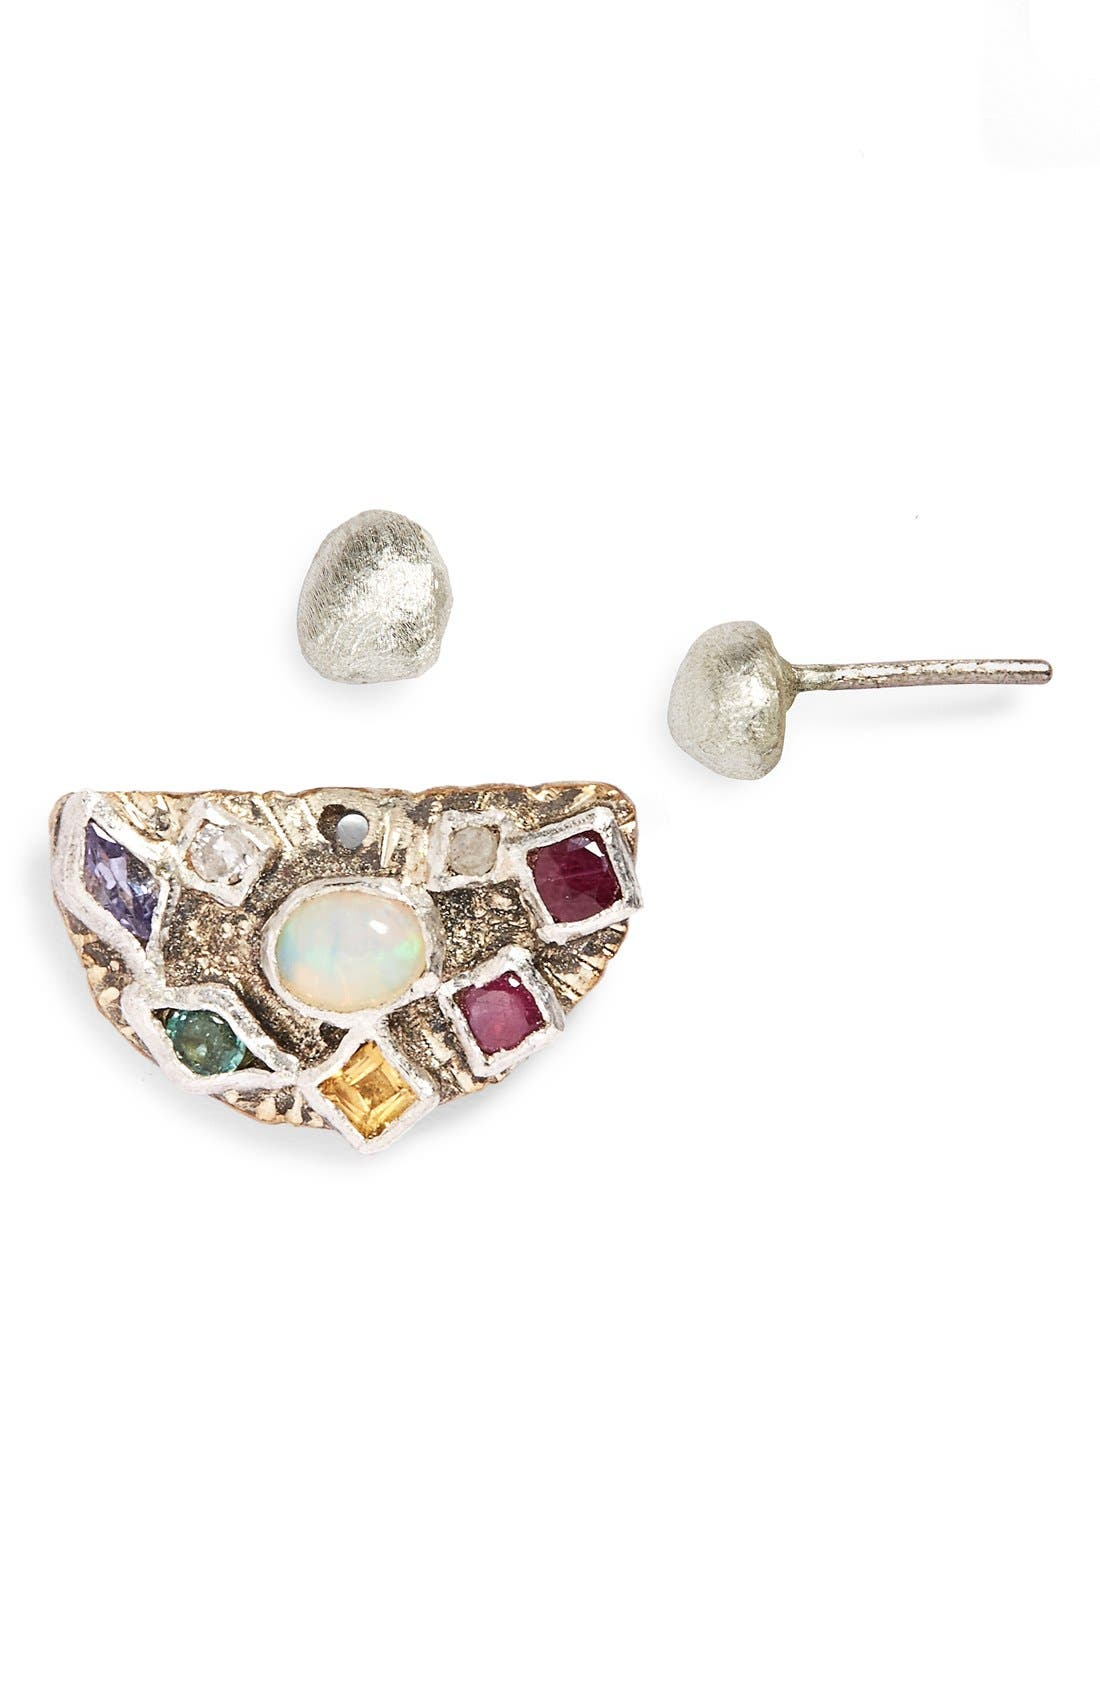 FRANNY E JEWELRY Multistone Ear Jacket with Sterling Silver Stud